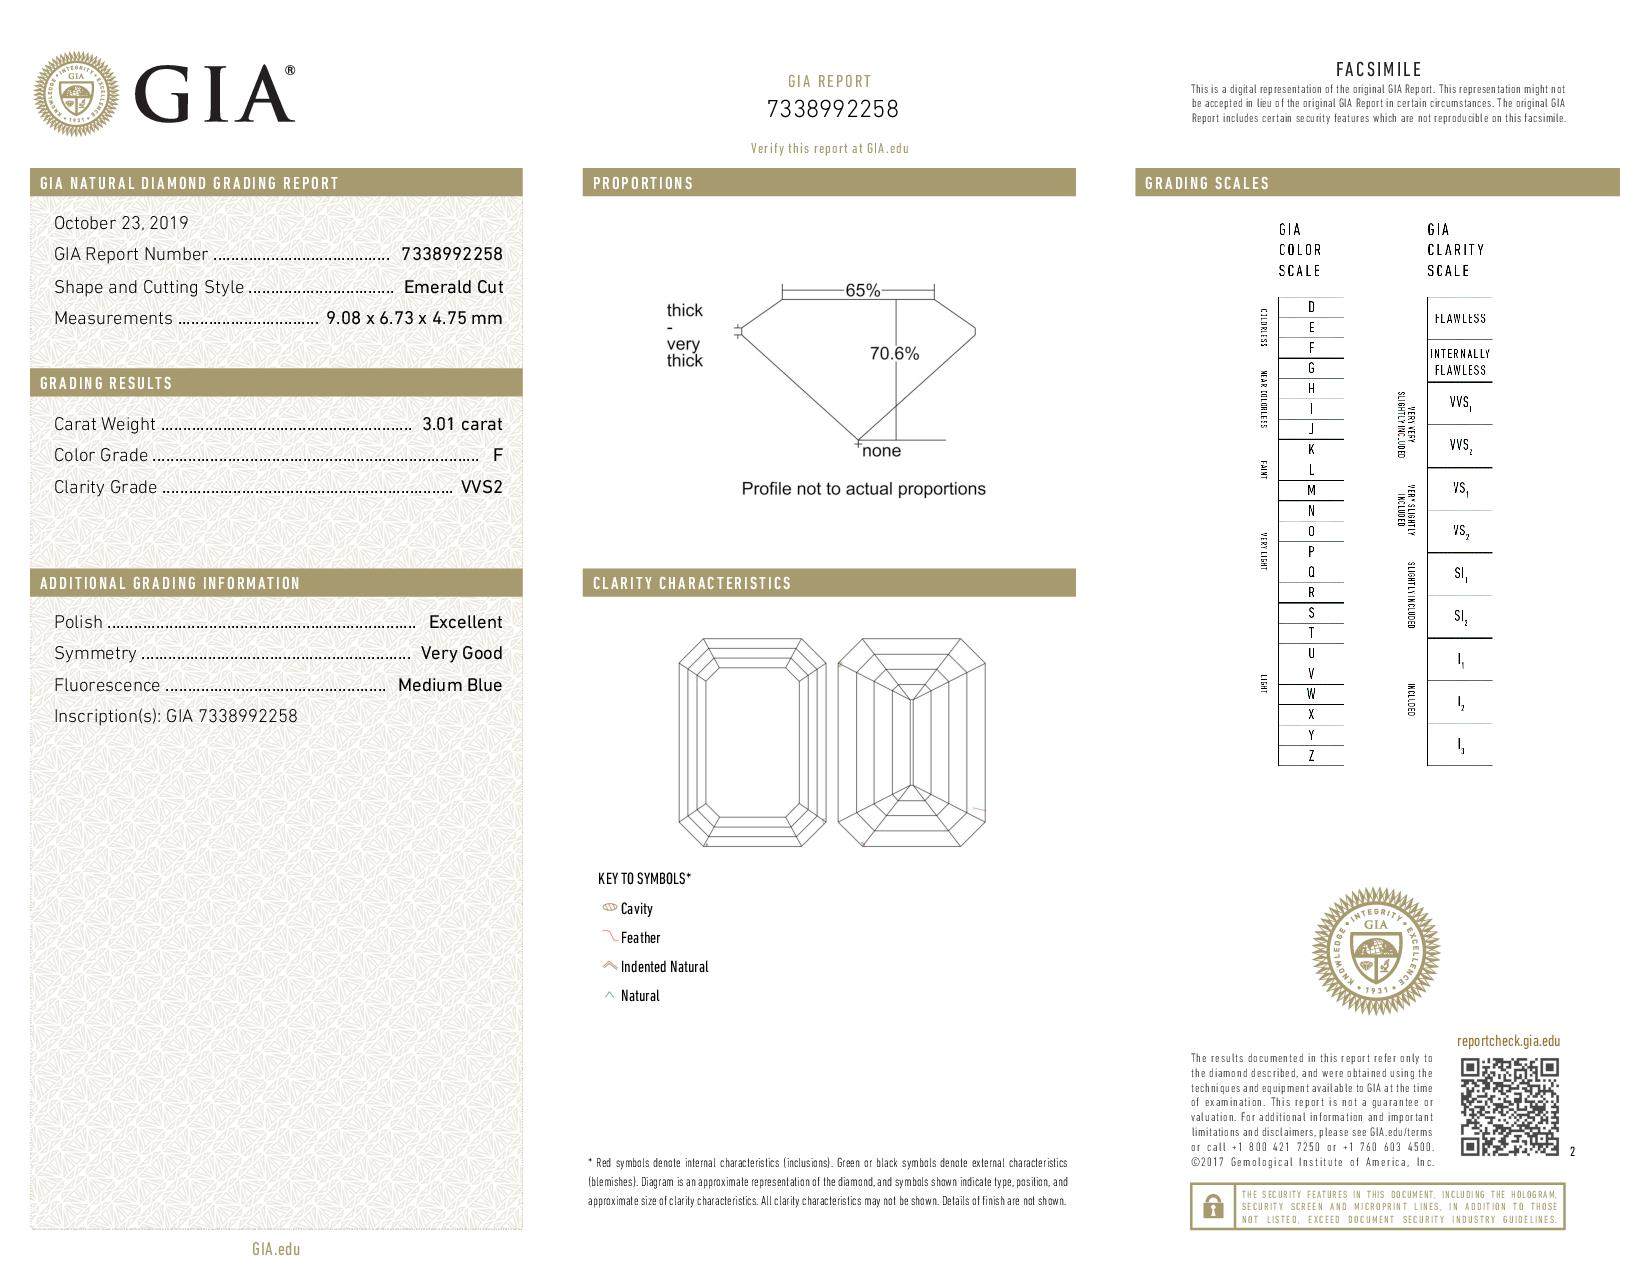 This is a 3.01 carat emerald shape, F color, VVS2 clarity natural diamond accompanied by a GIA grading report.